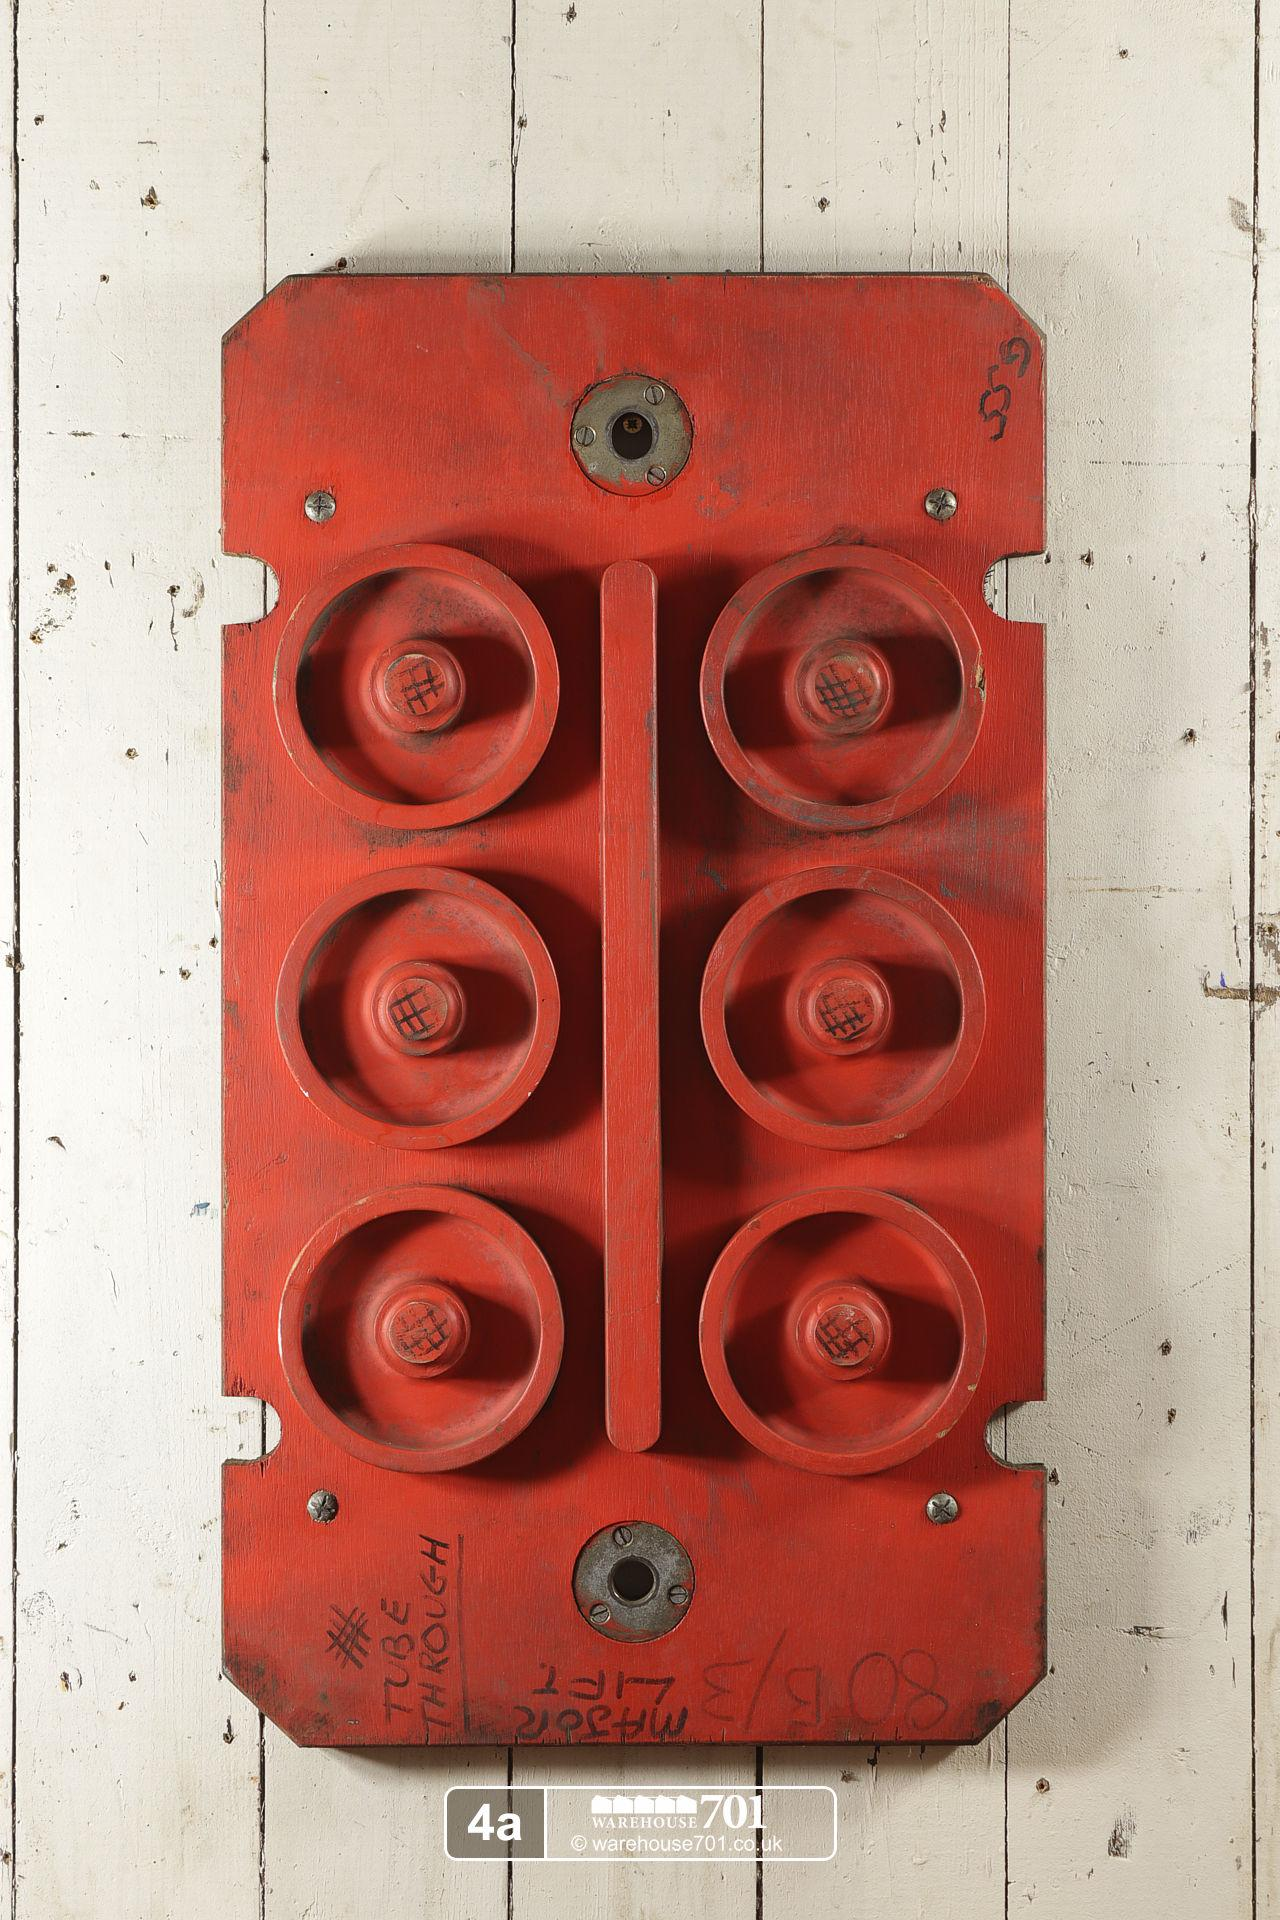 Reclaimed Foundry Patterns or Moulds (No's 4 to 6) for Shop, Retail and Home Display #2